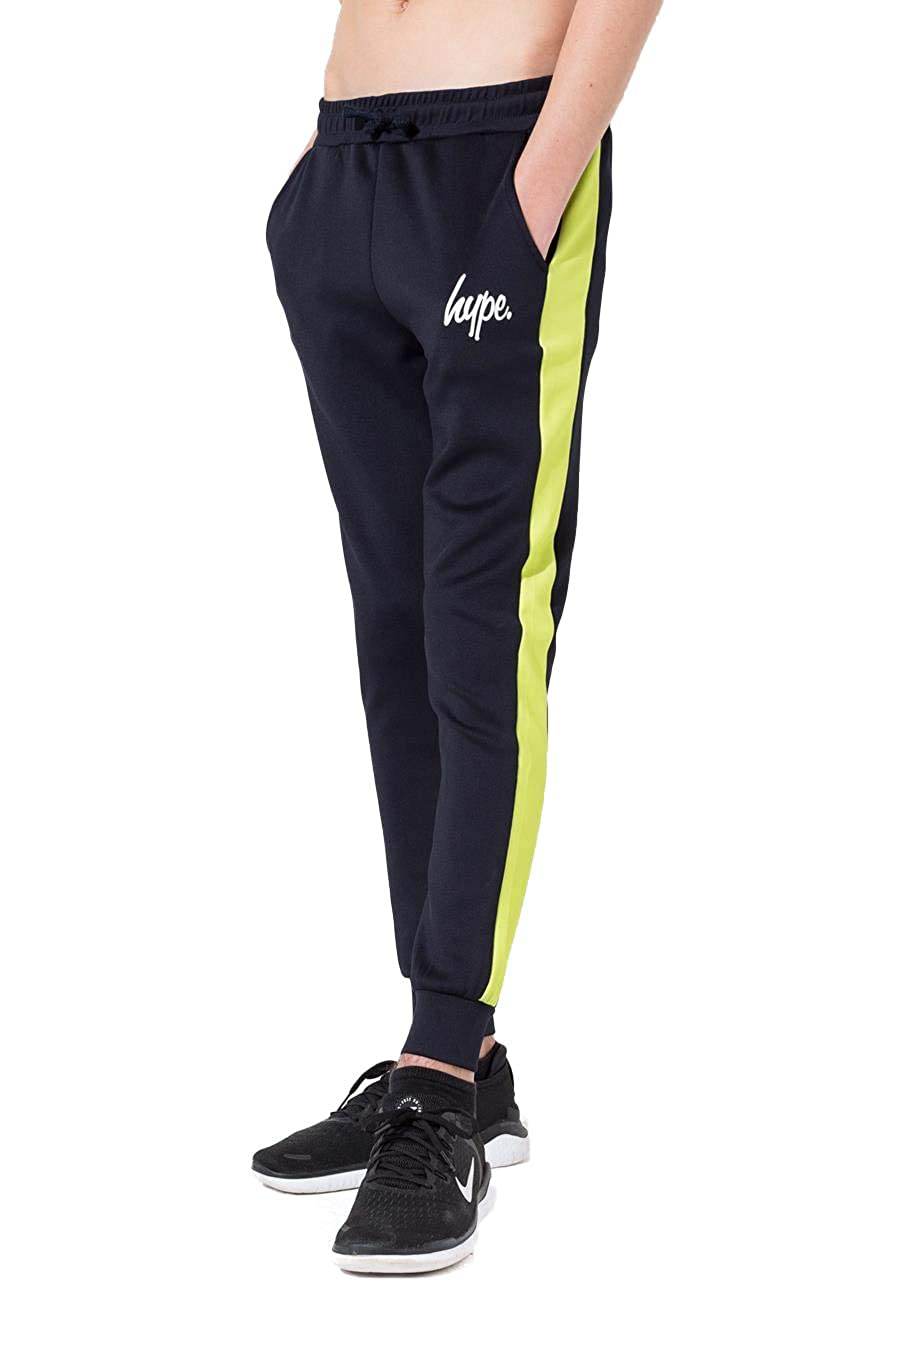 13 hype Boys Junior Boys Mini Script Joggers in Navy Green